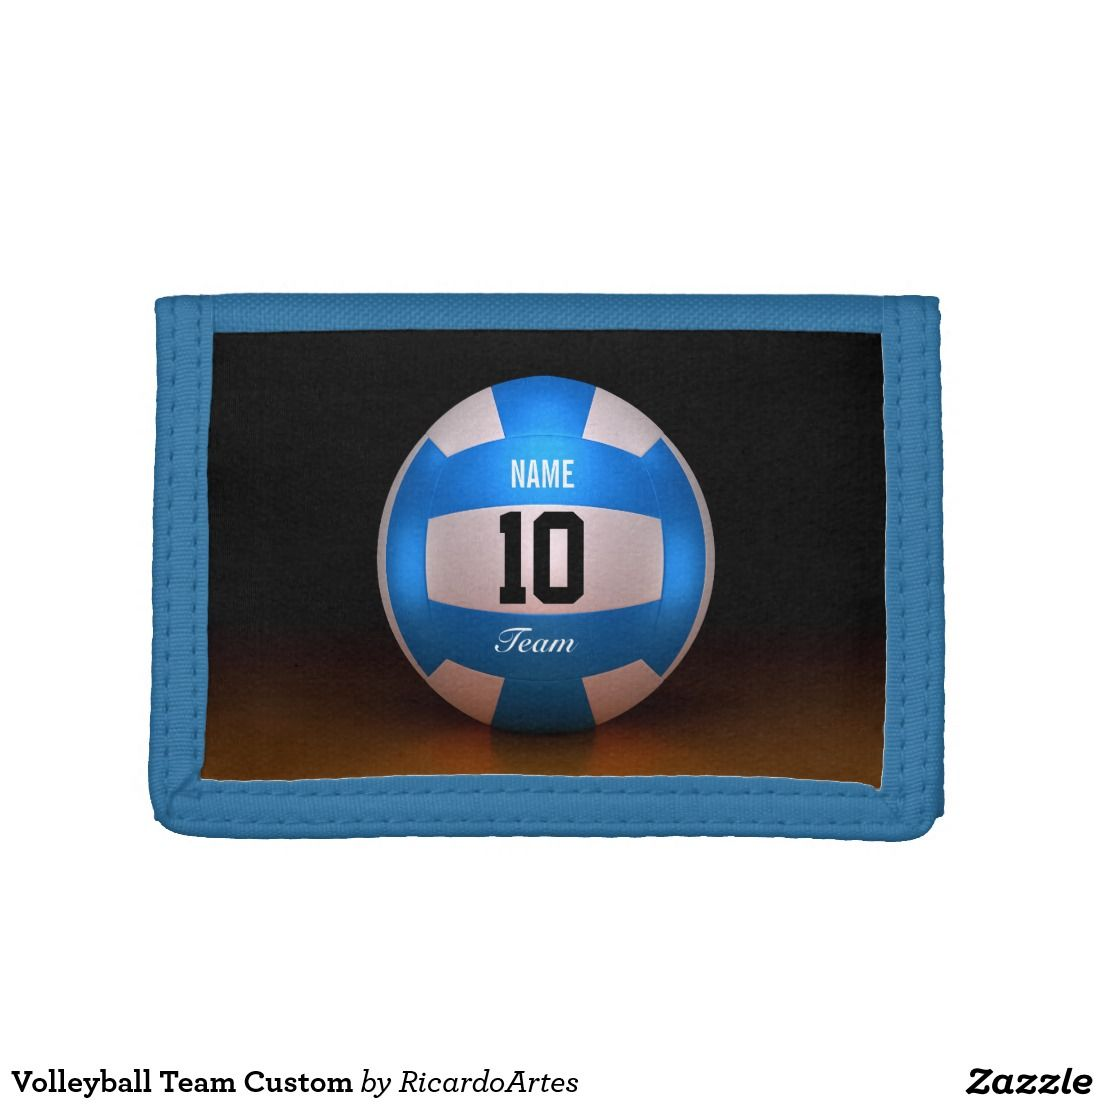 Volleyball Team Custom Trifold Wallet Zazzle Com Volleyball Team Volleyball Designs Trifold Wallet